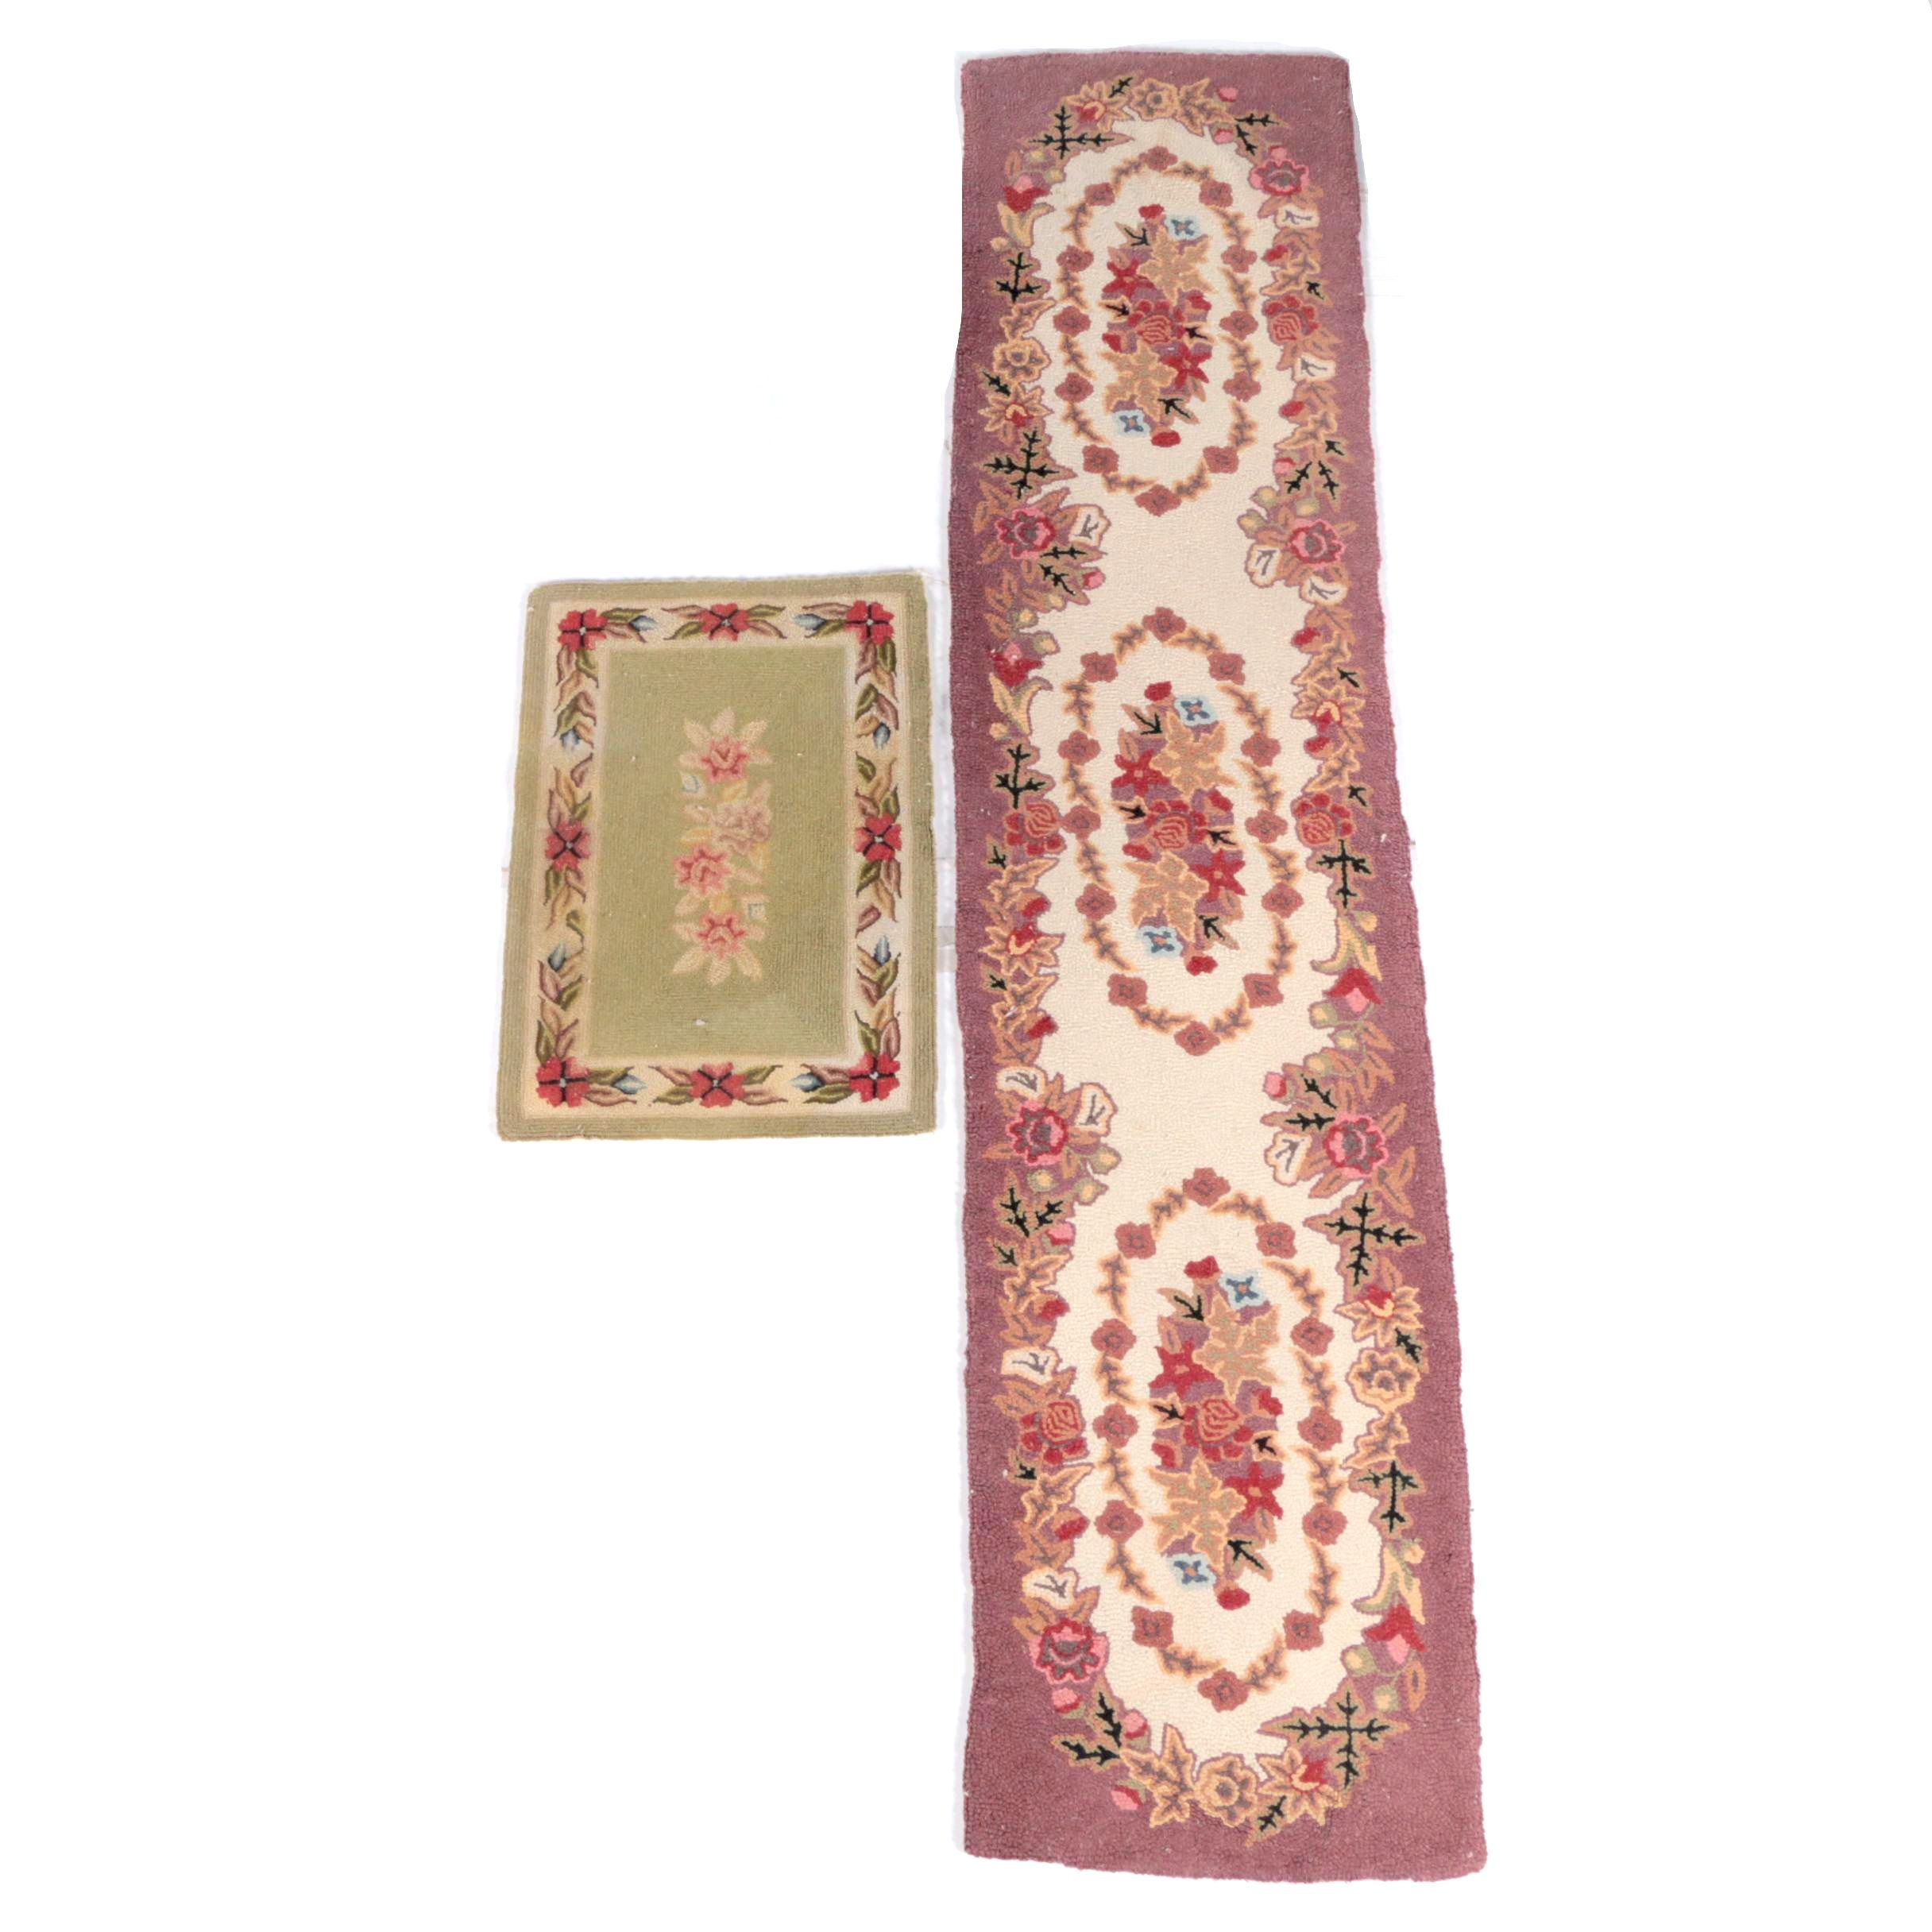 Hooked Floral Wool Carpet Runner and Accent Rug